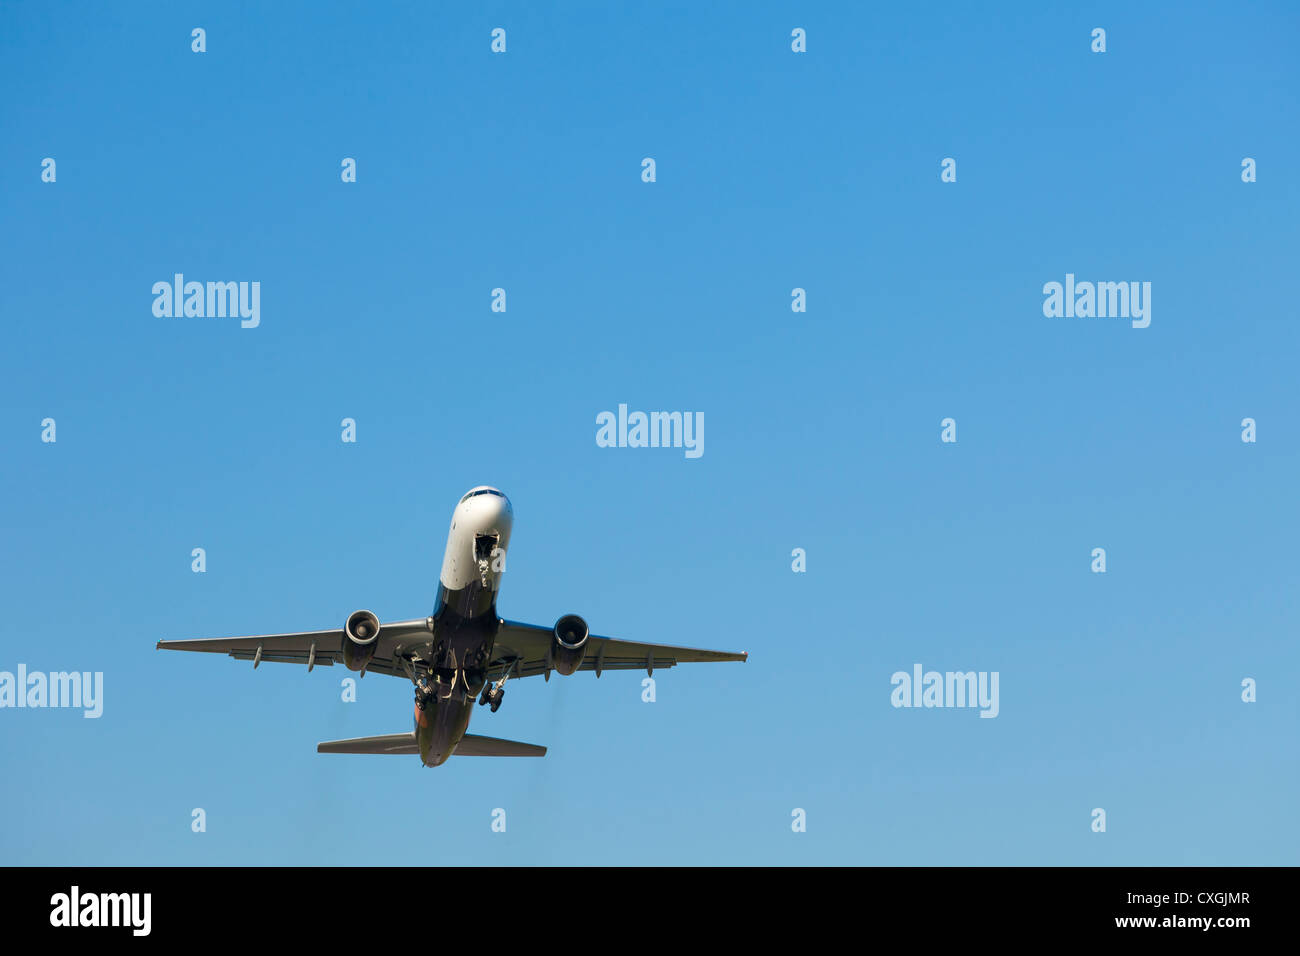 Airplane airborne after take off, England - Stock Image